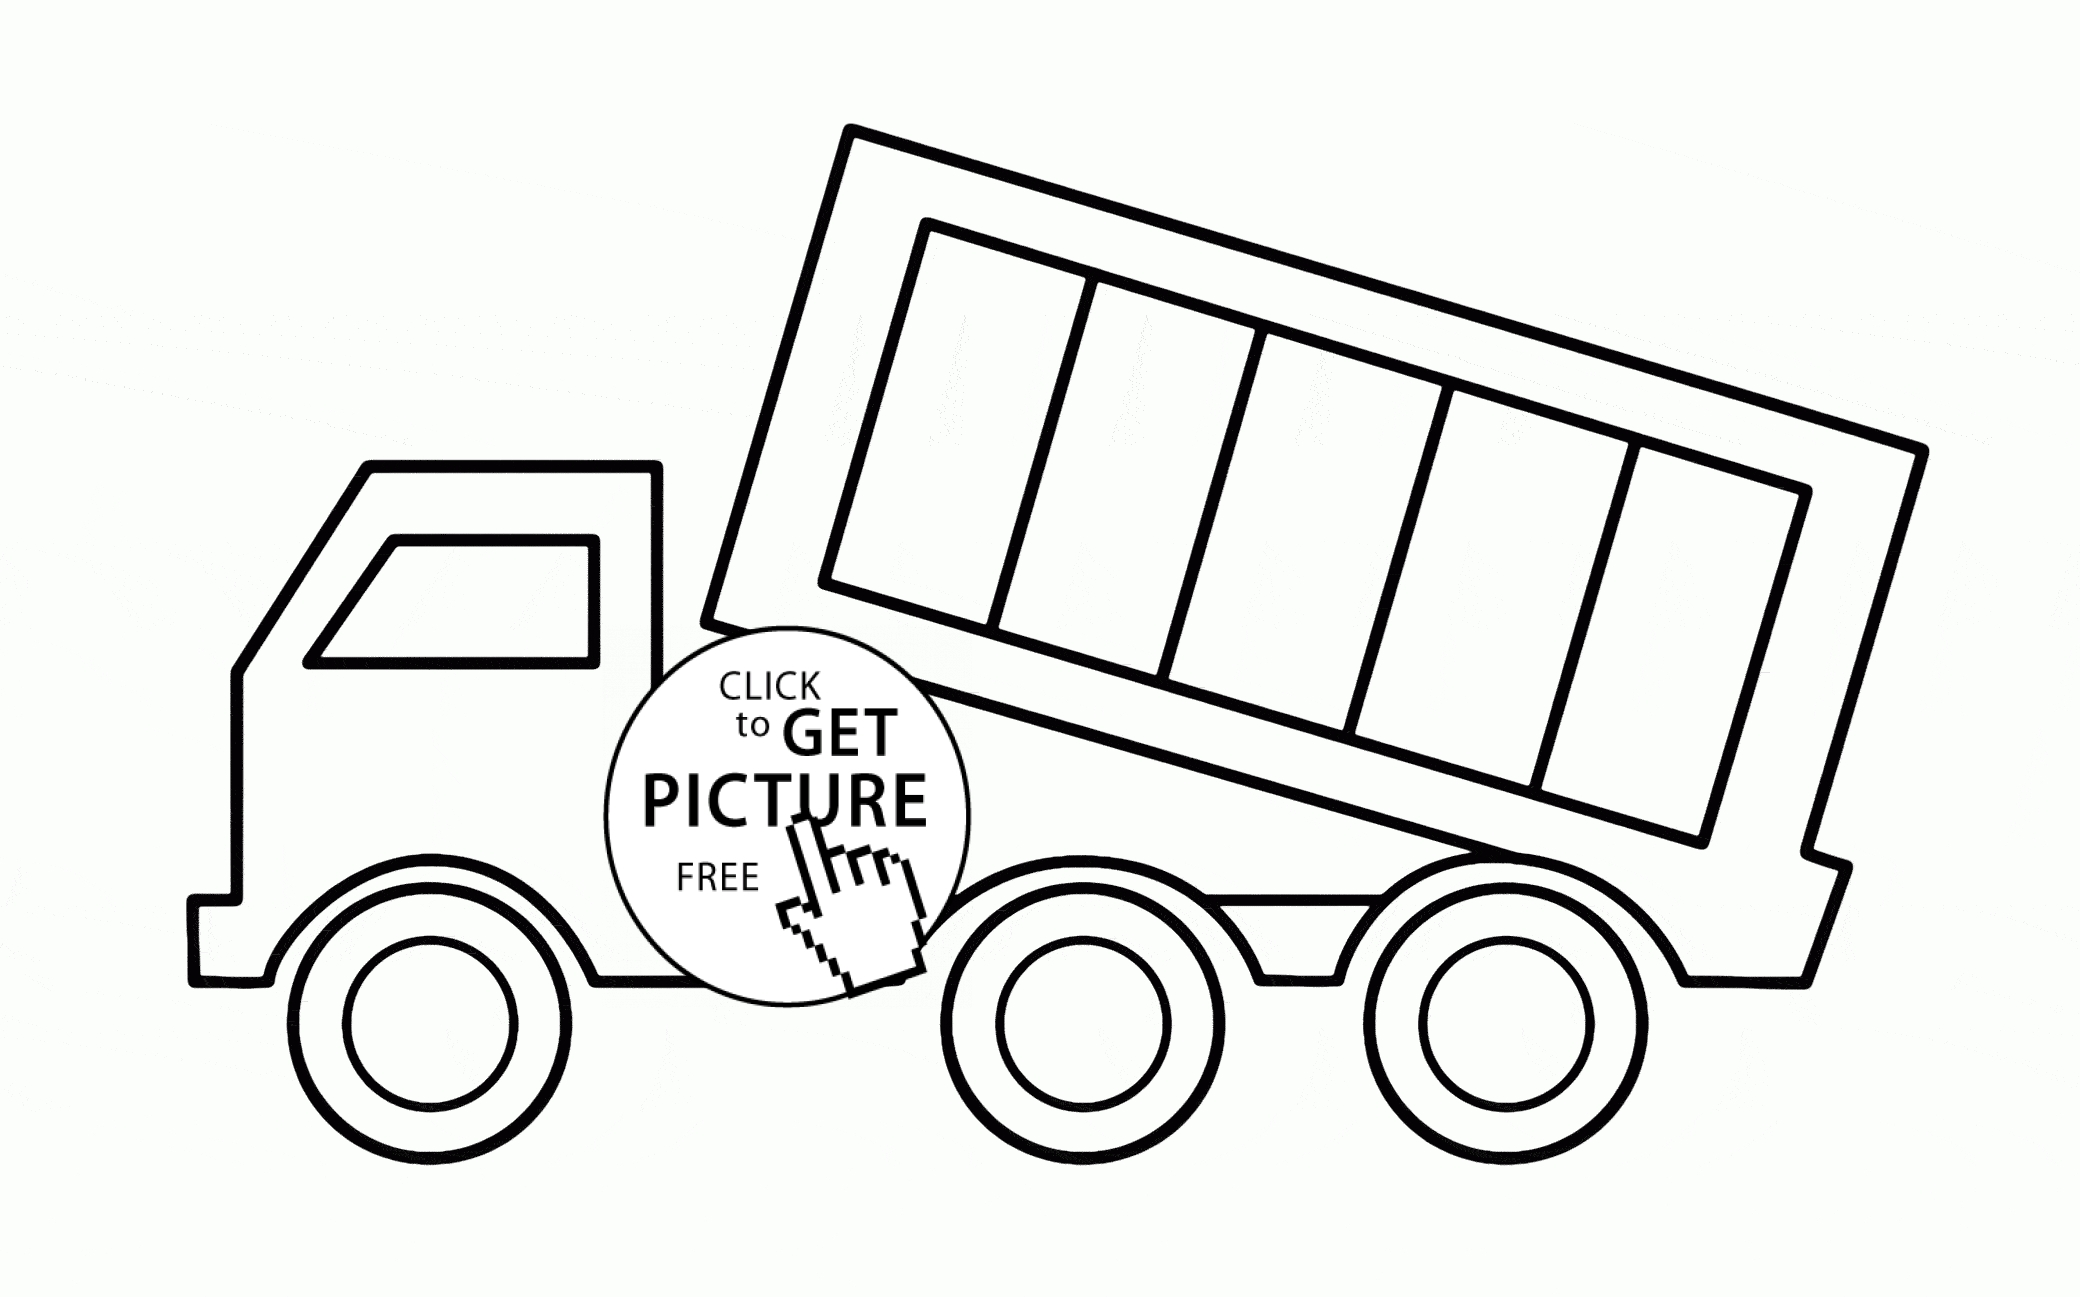 simple coloring pages - simple dump truck coloring page for toddlers transportation coloring pages printables free